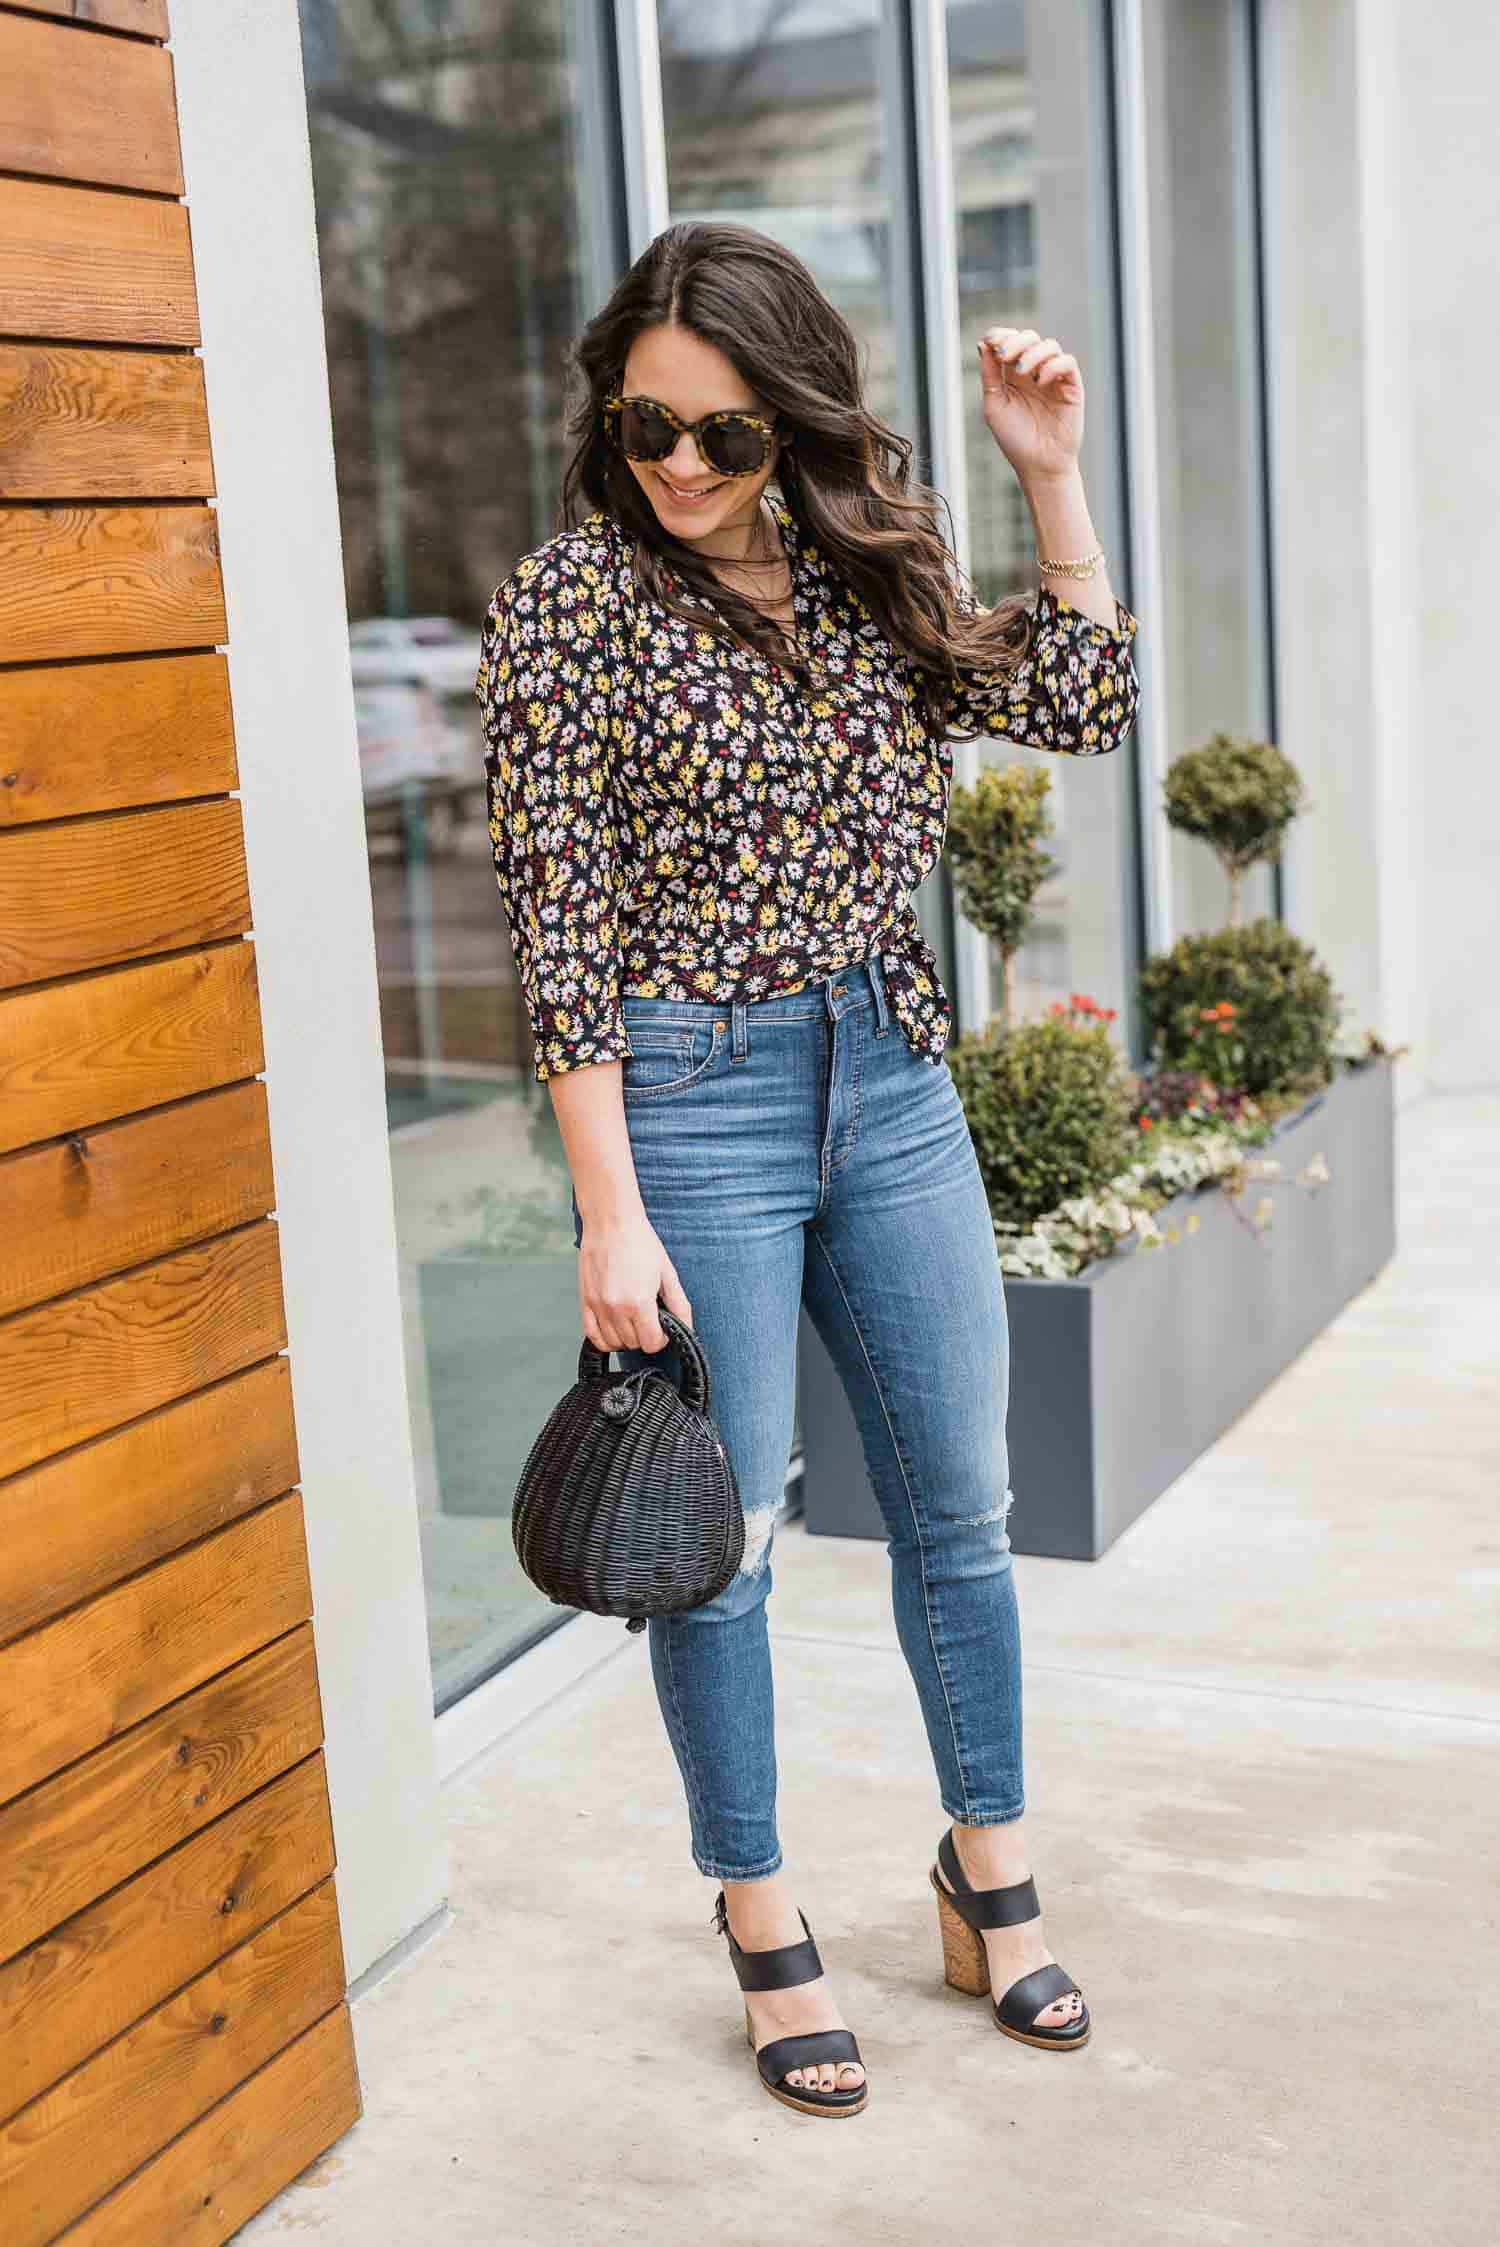 Jessica Camerata is wearing a Madewell wrap floral print blouse, Madewell jeans, Vince shoes, Karen Walker sunglasses and a Cult Gaia Millie bag.